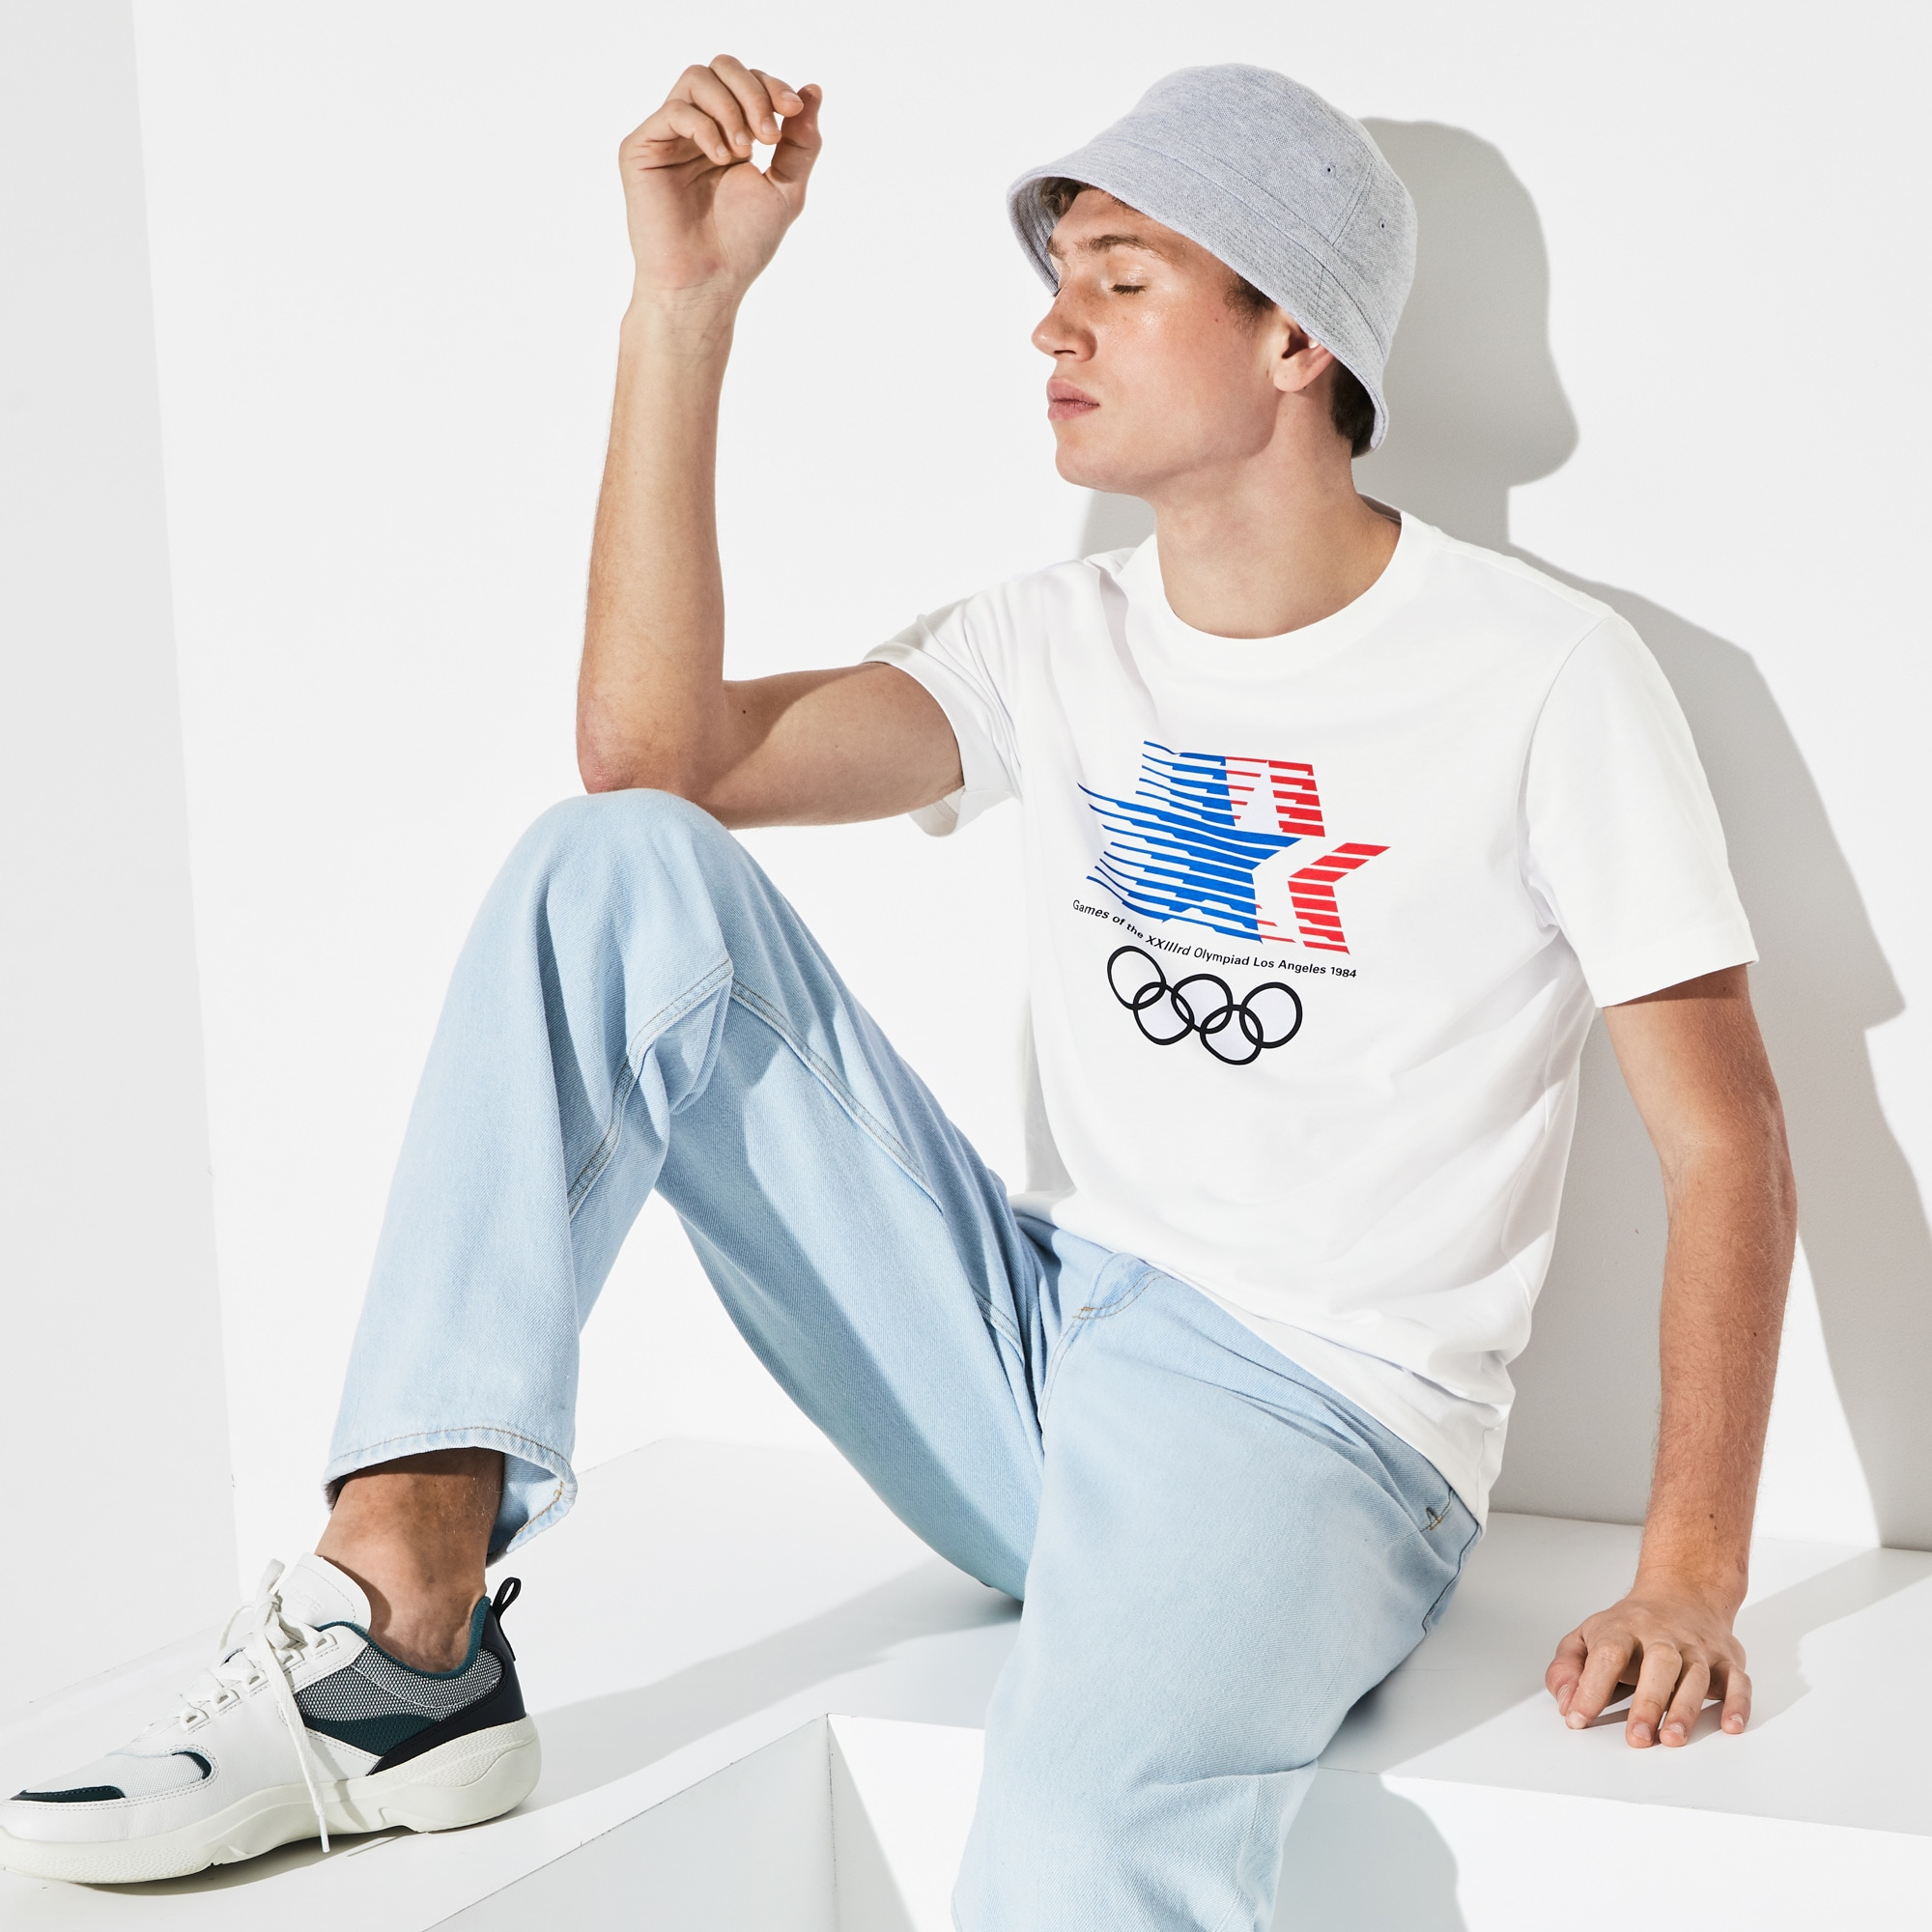 ab47be79d4 Men's Olympic Heritage Collection By Lacoste Crew Neck T-shirt | LACOSTE